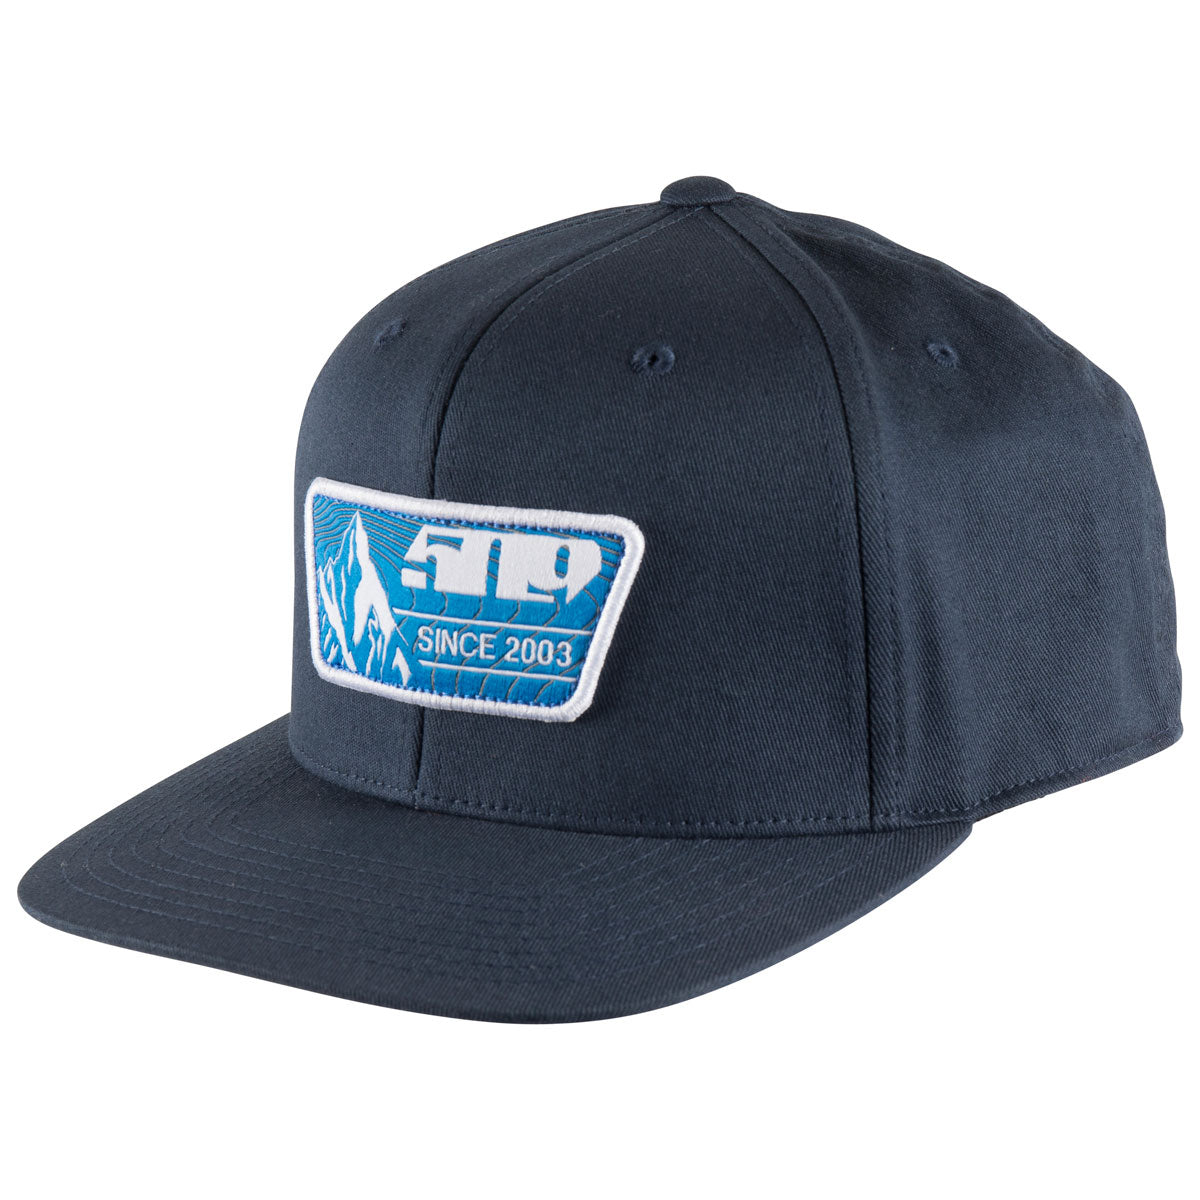 Blue Prints Flexfit 110 Snapback Hat